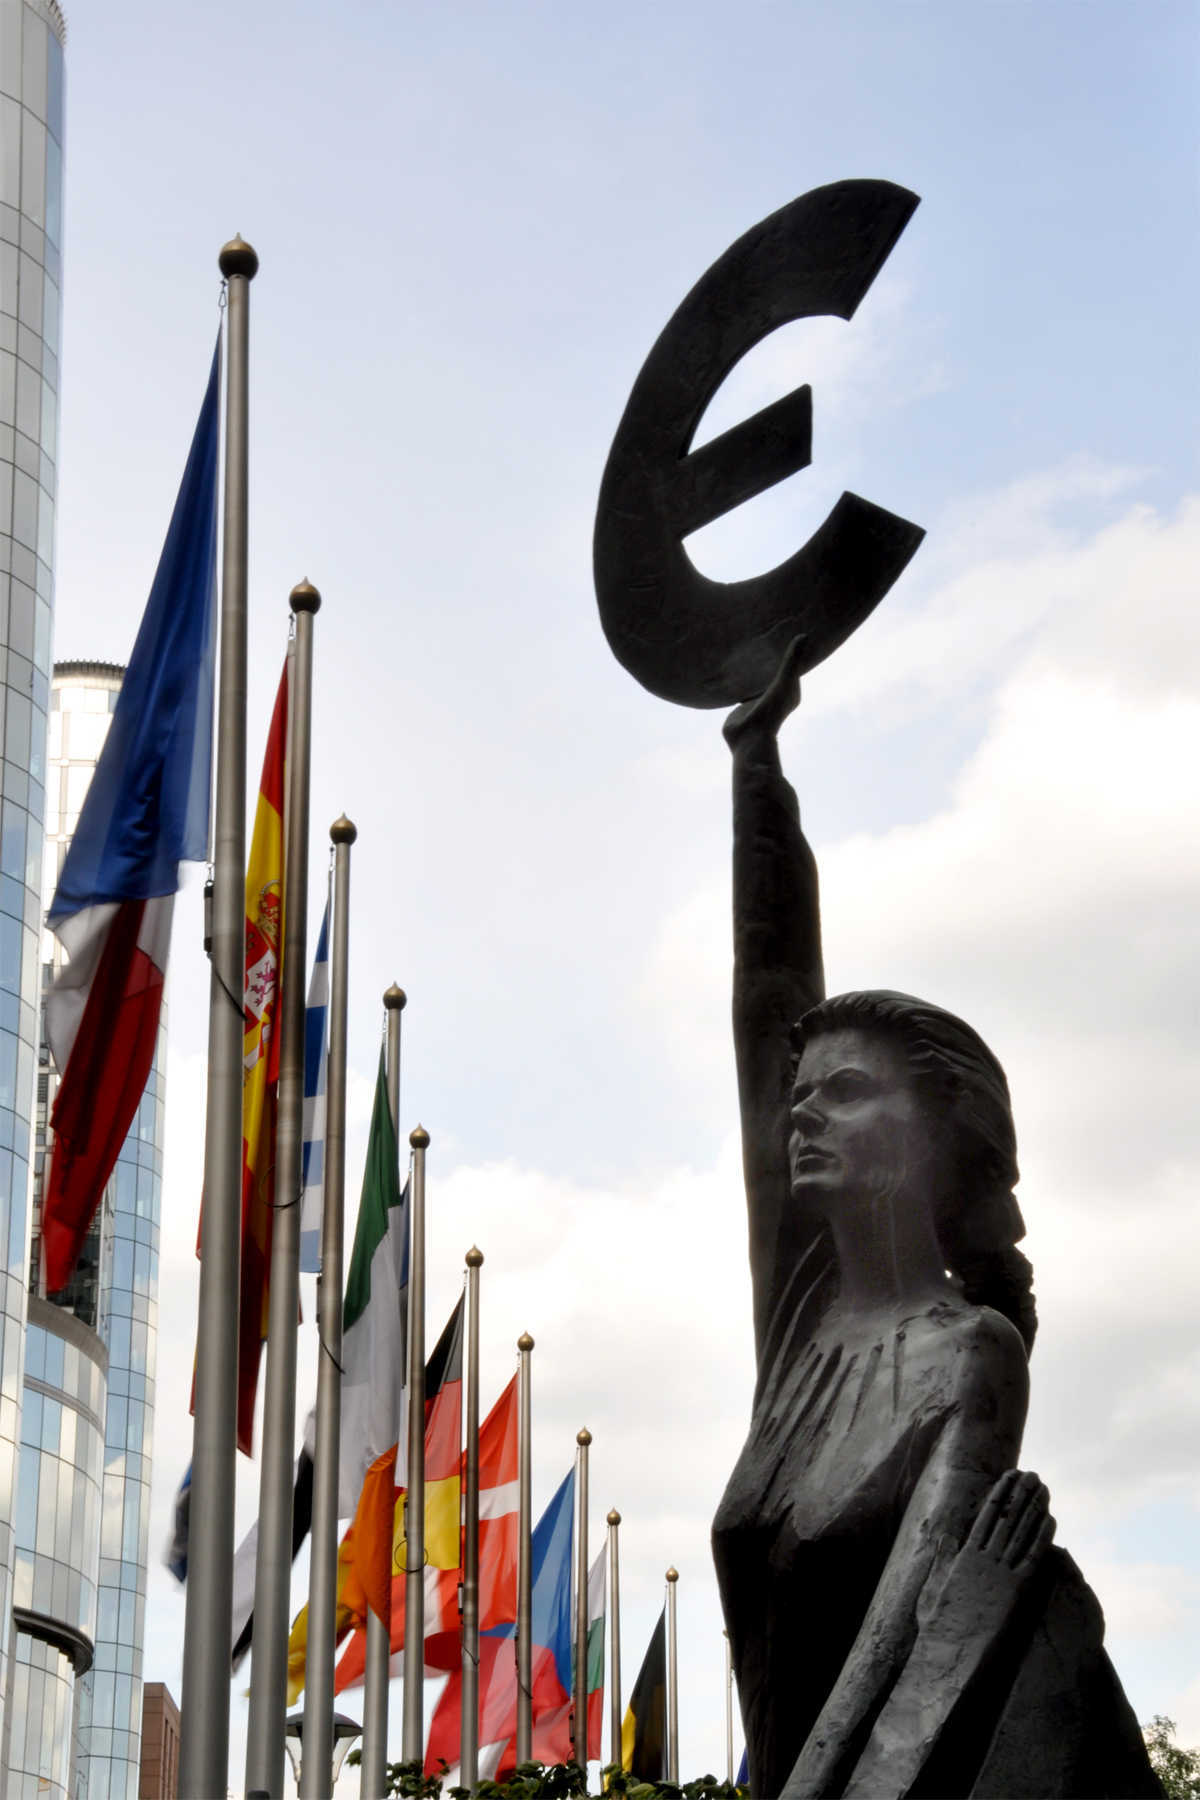 Euro Statue and Flags, European Parliament, Brussels, Belgium